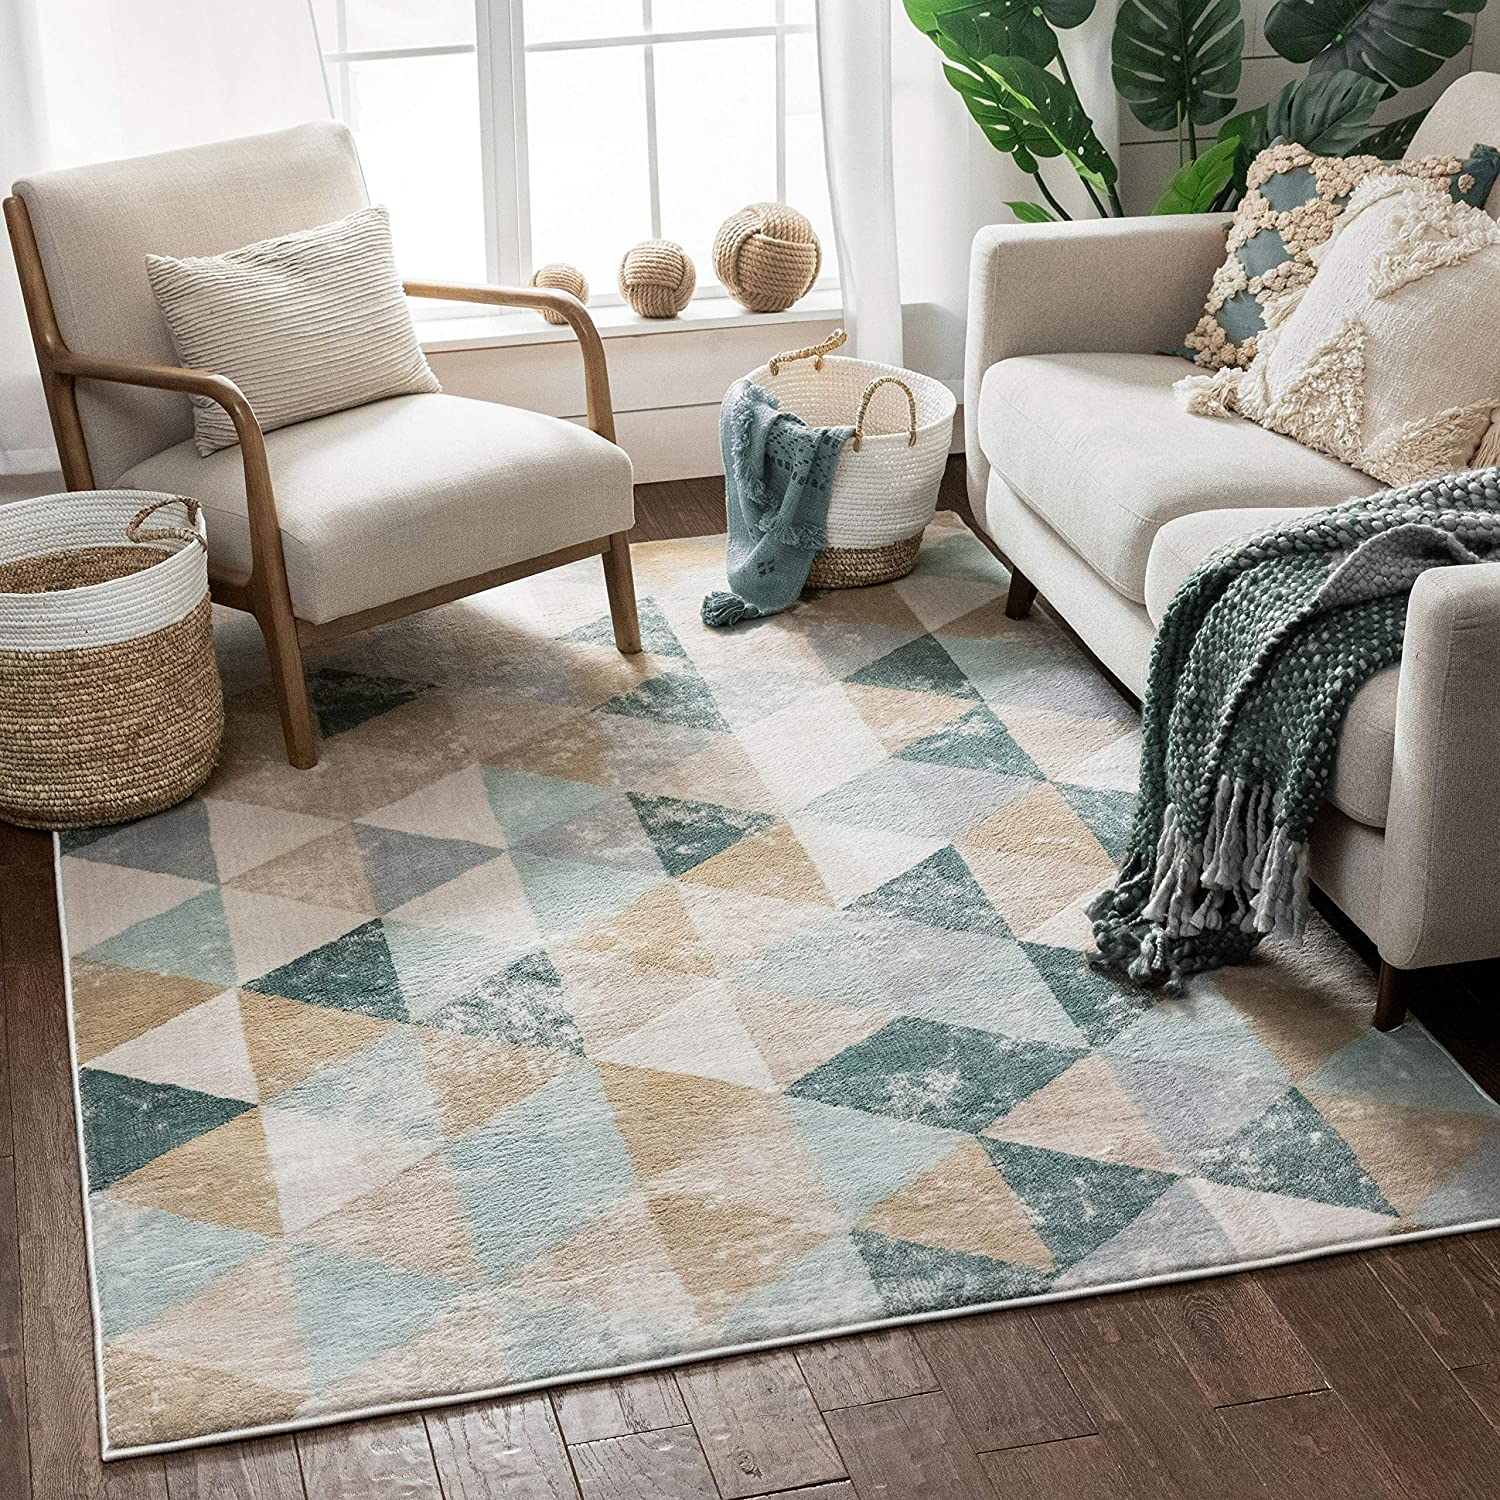 Well Woven Melody Mint Blue Geometric Tile Modern 5x7 5 3 X 7 3 Area Rug Mint Blue Triangles Isometry Marble Distress Contemporary Carpet Home Kitchen